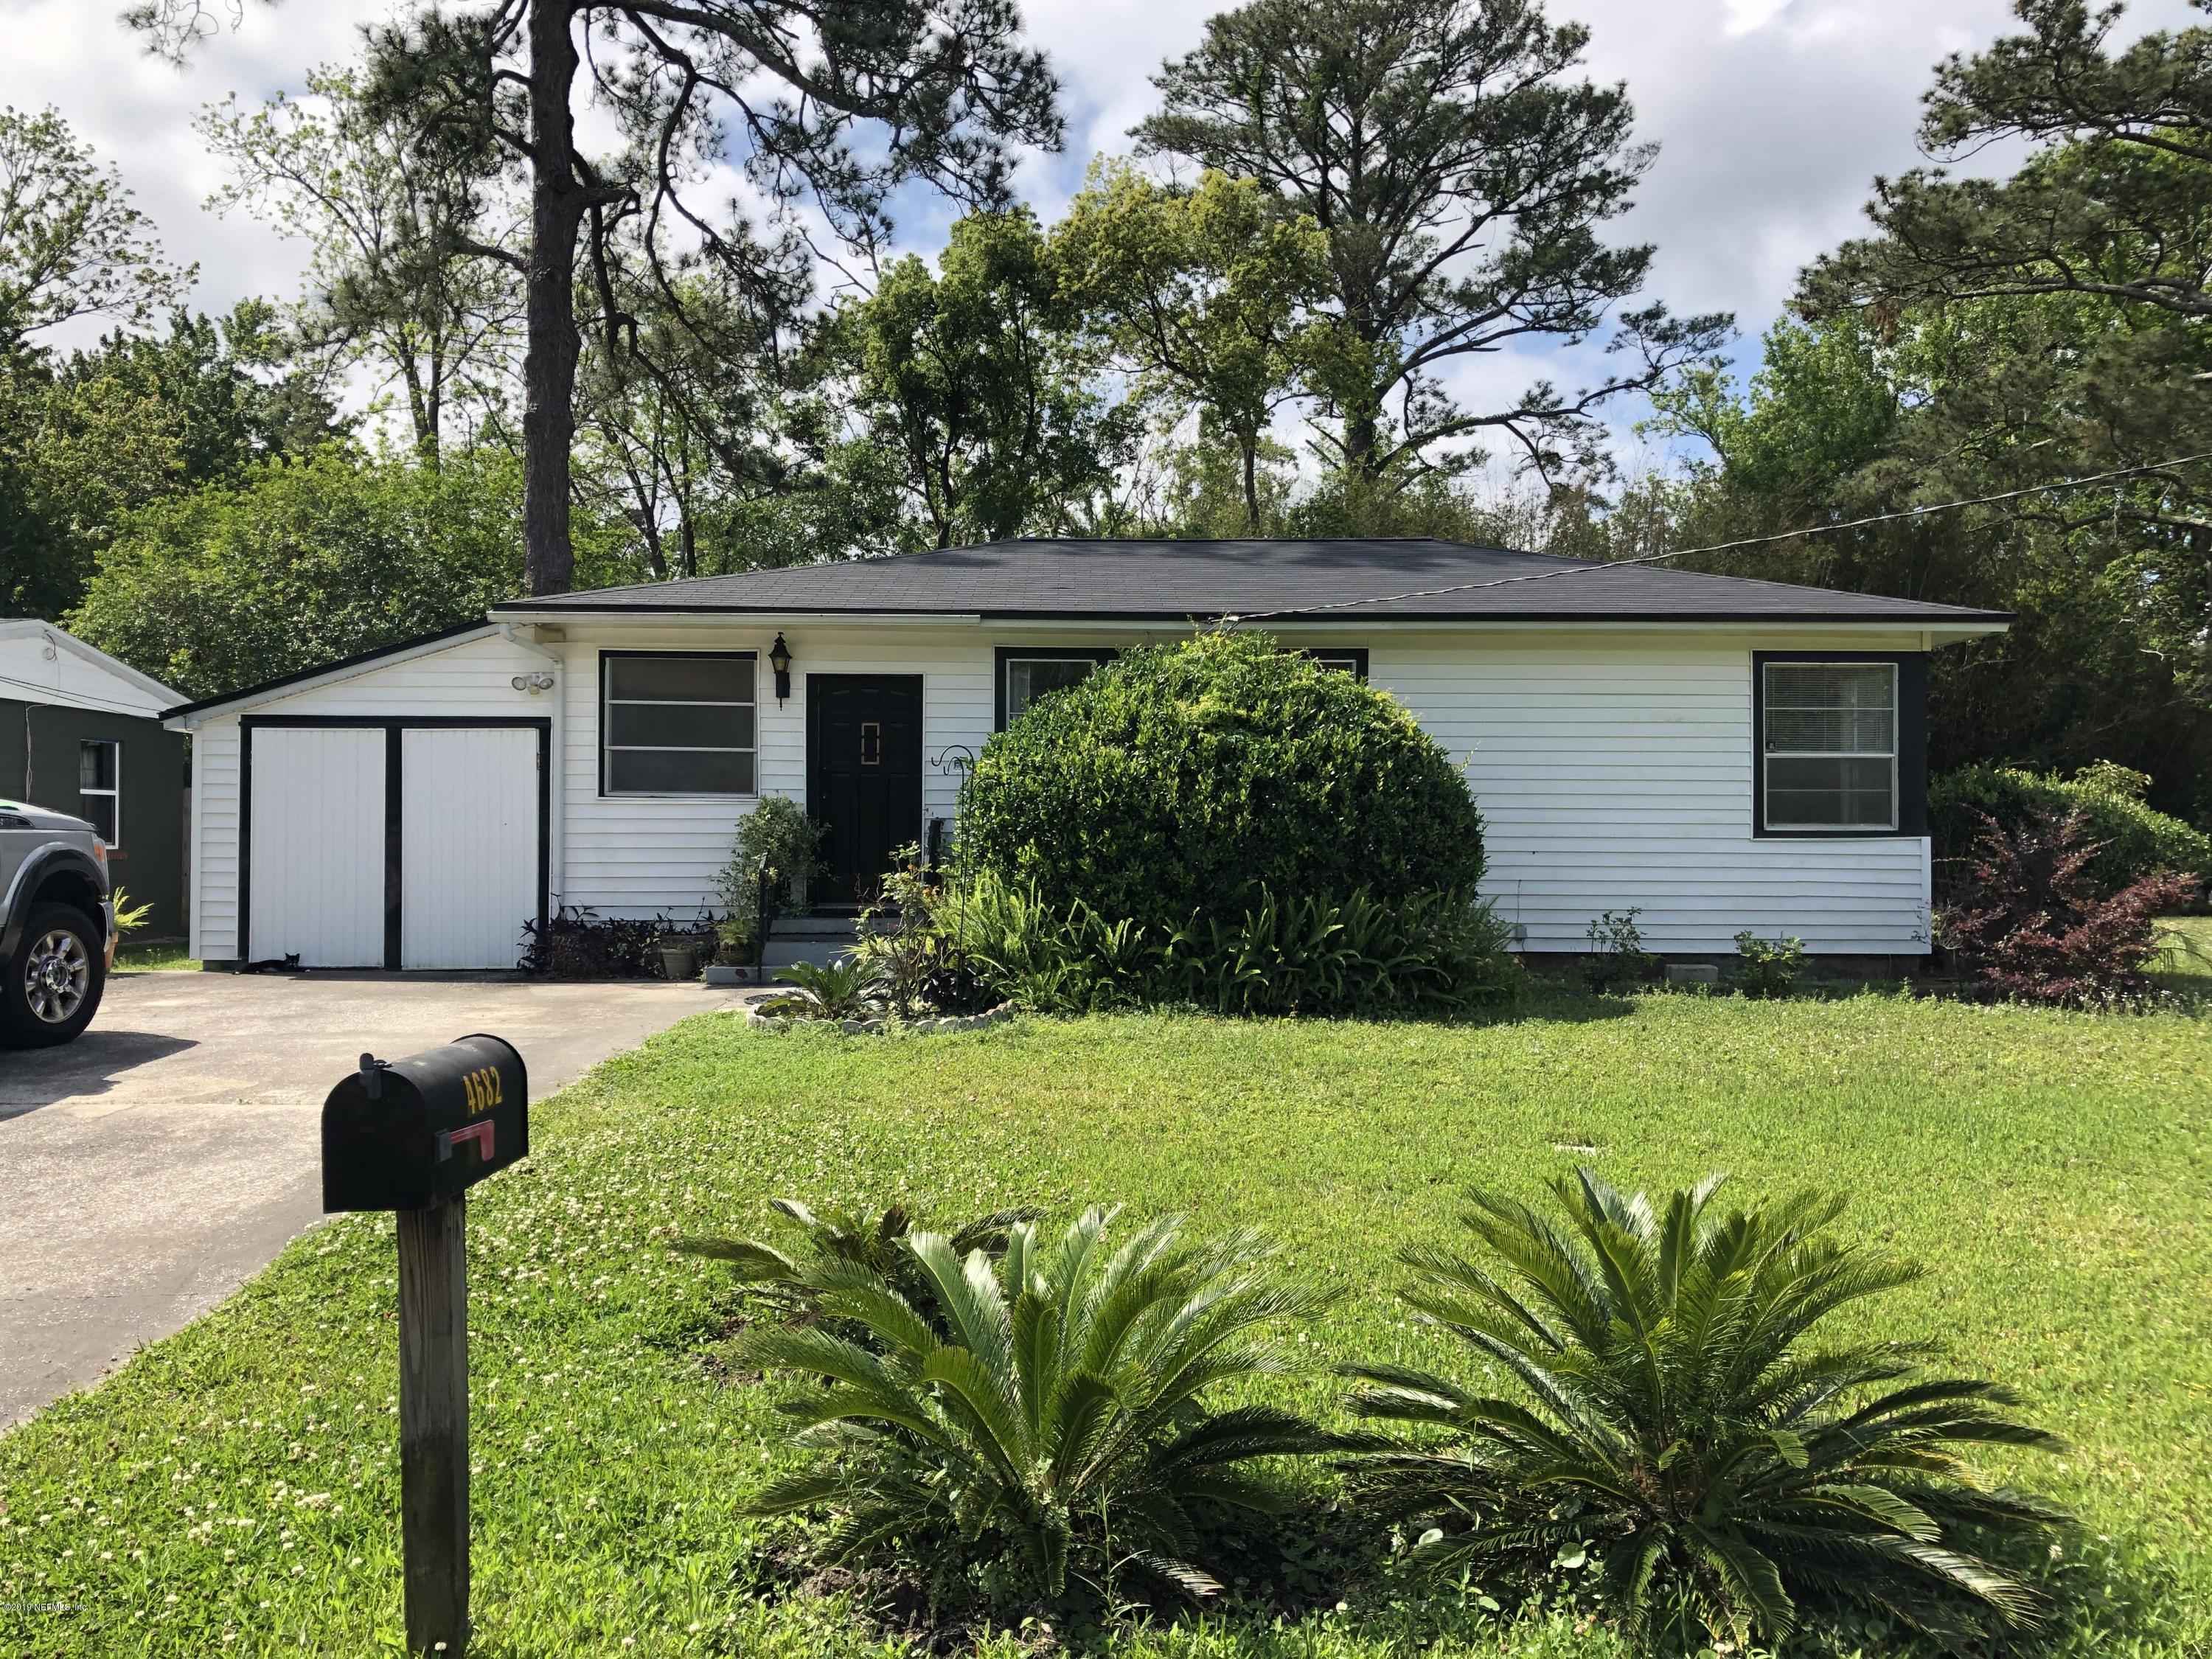 4682 BLOUNT, JACKSONVILLE, FLORIDA 32210, 2 Bedrooms Bedrooms, ,1 BathroomBathrooms,Residential - single family,For sale,BLOUNT,989821